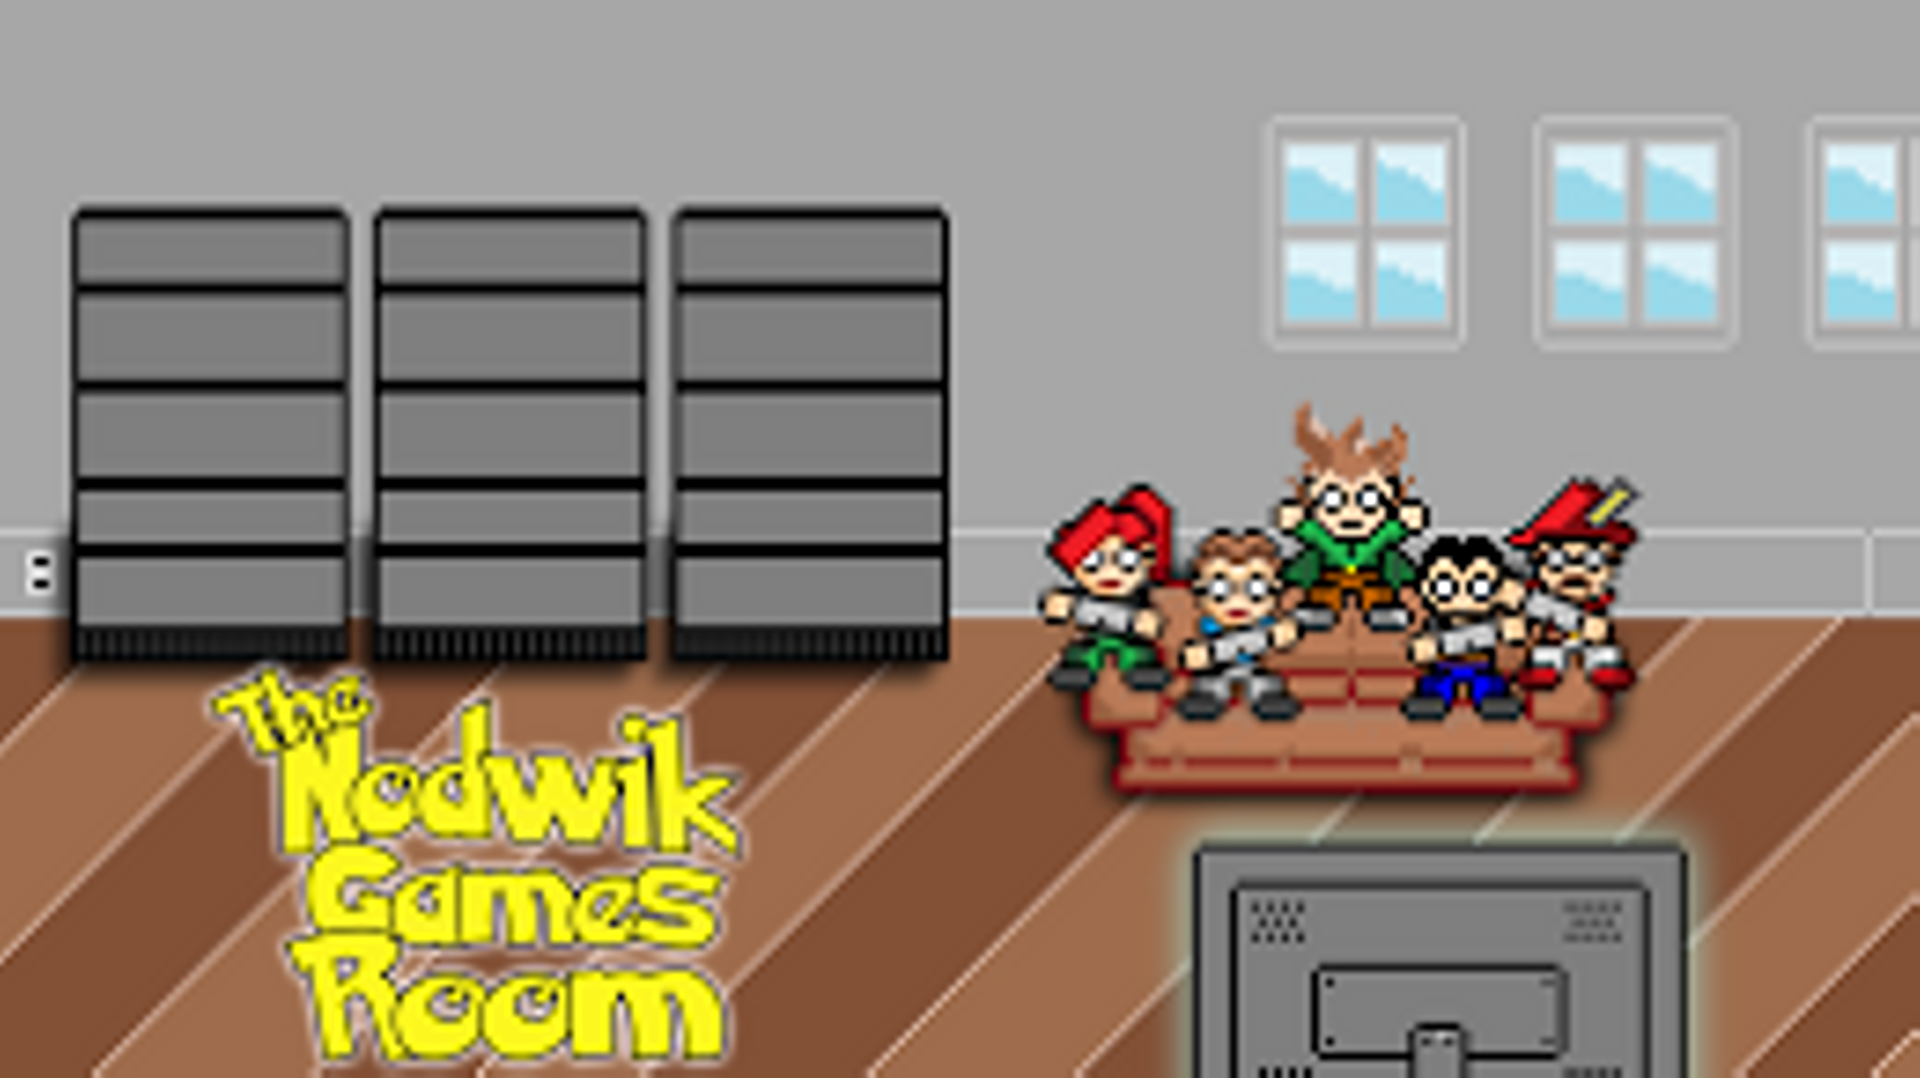 The Nodwik Games Room is creating Let's Plays and Pop